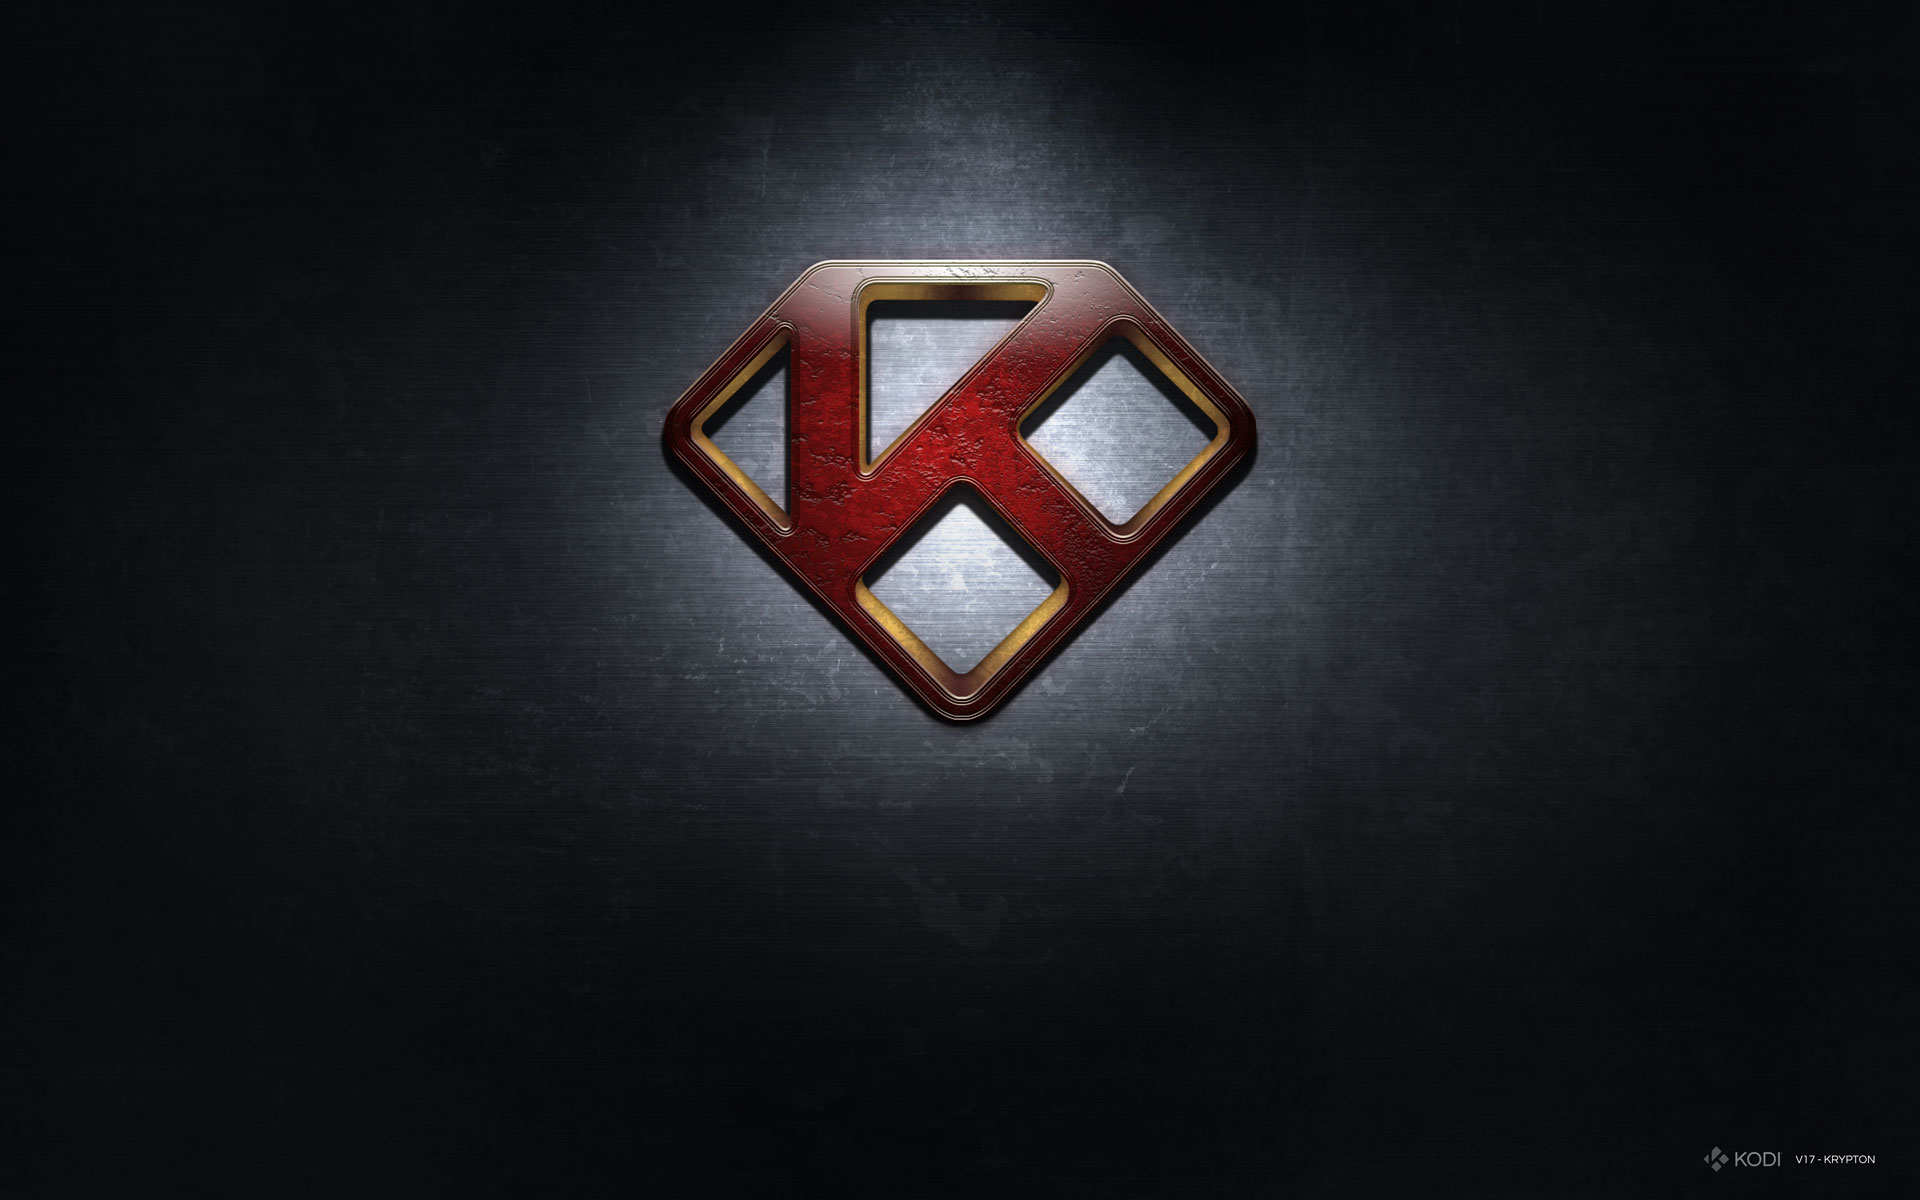 Kodi fanart and wallpaper -  Image Kodi Wallpaper Krypton Icon 1920x1200 Jpg